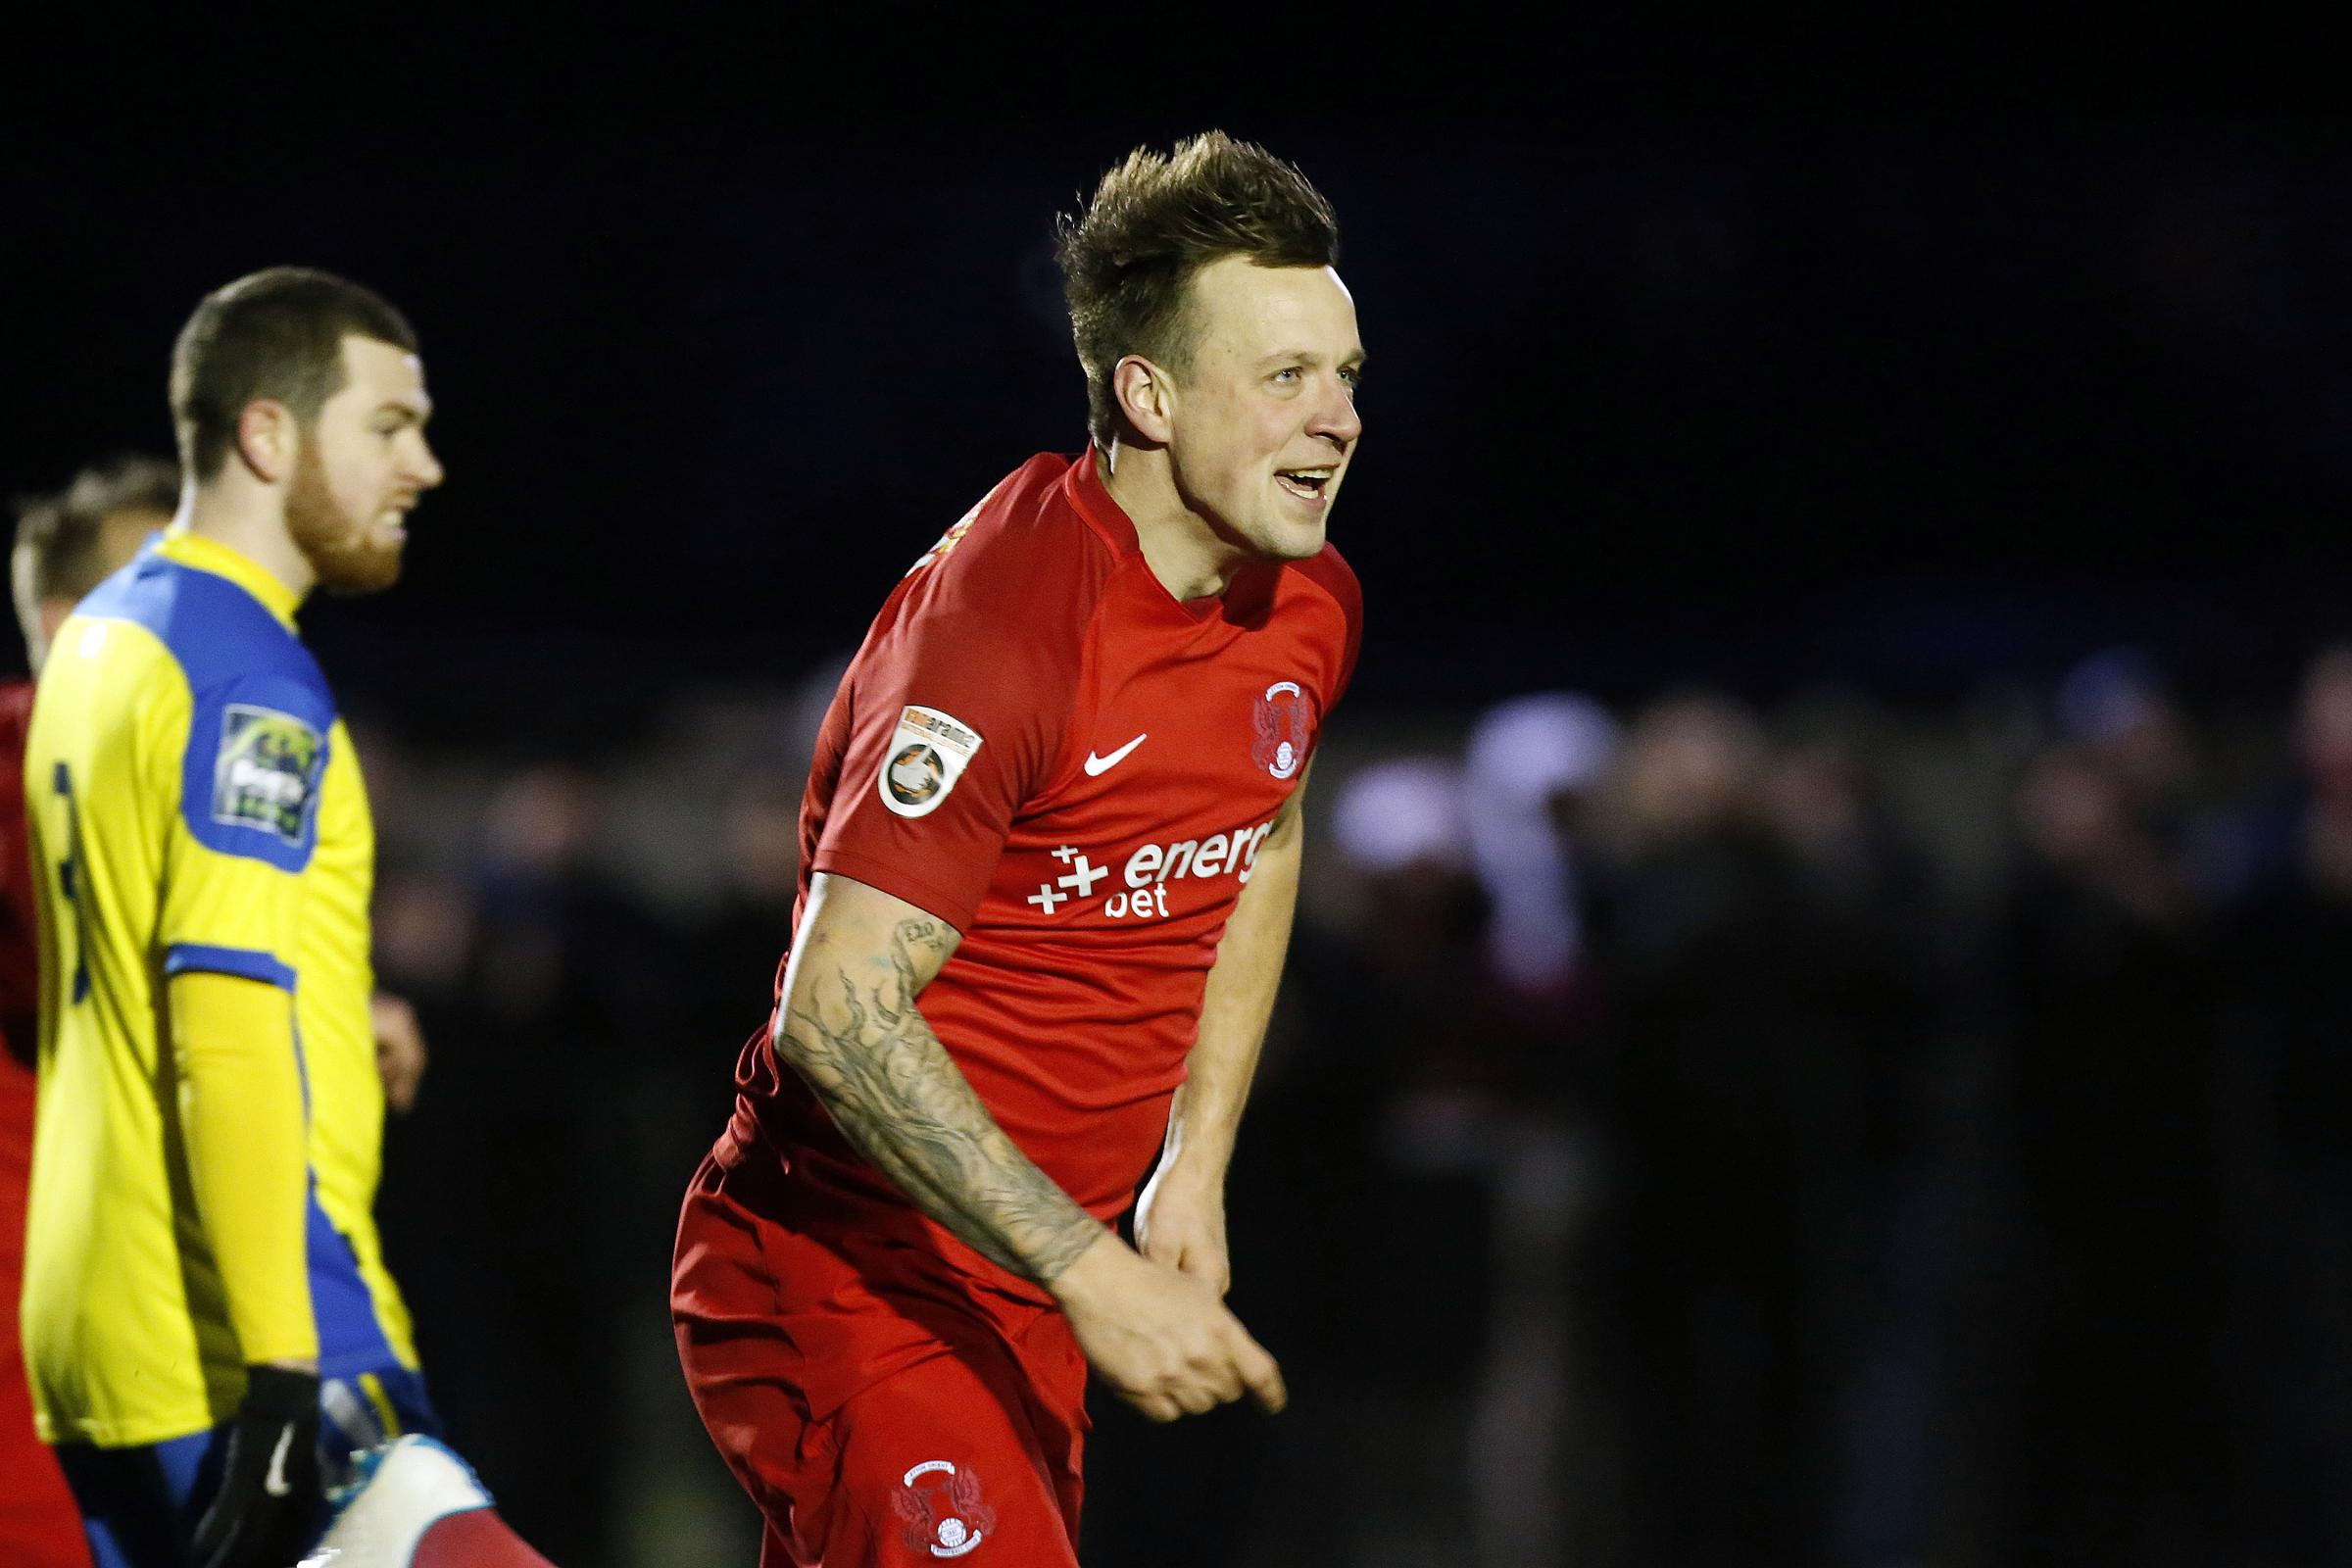 Josh Coulson celebrates one of his two goals for Leyton Orient. Picture: Simon O'Connor